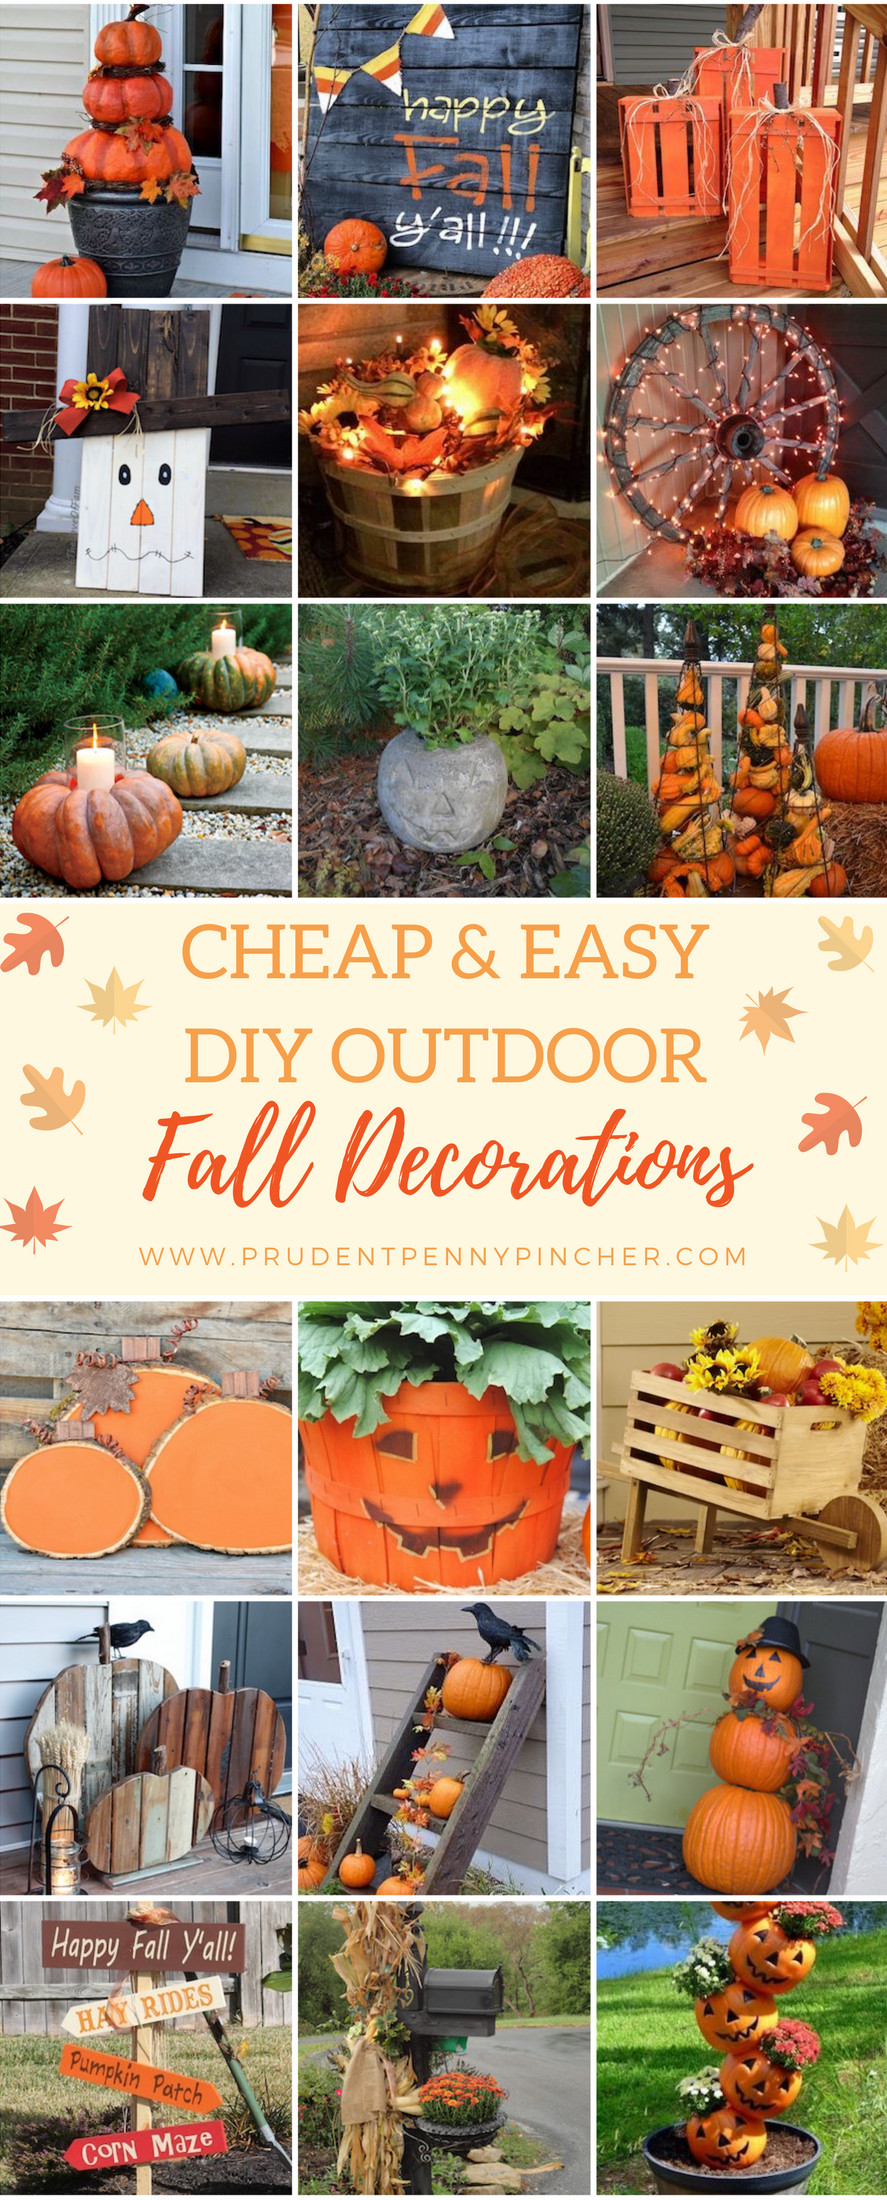 Diy Outdoor Fall Decor  50 Cheap and Easy DIY Outdoor Fall Decorations Prudent